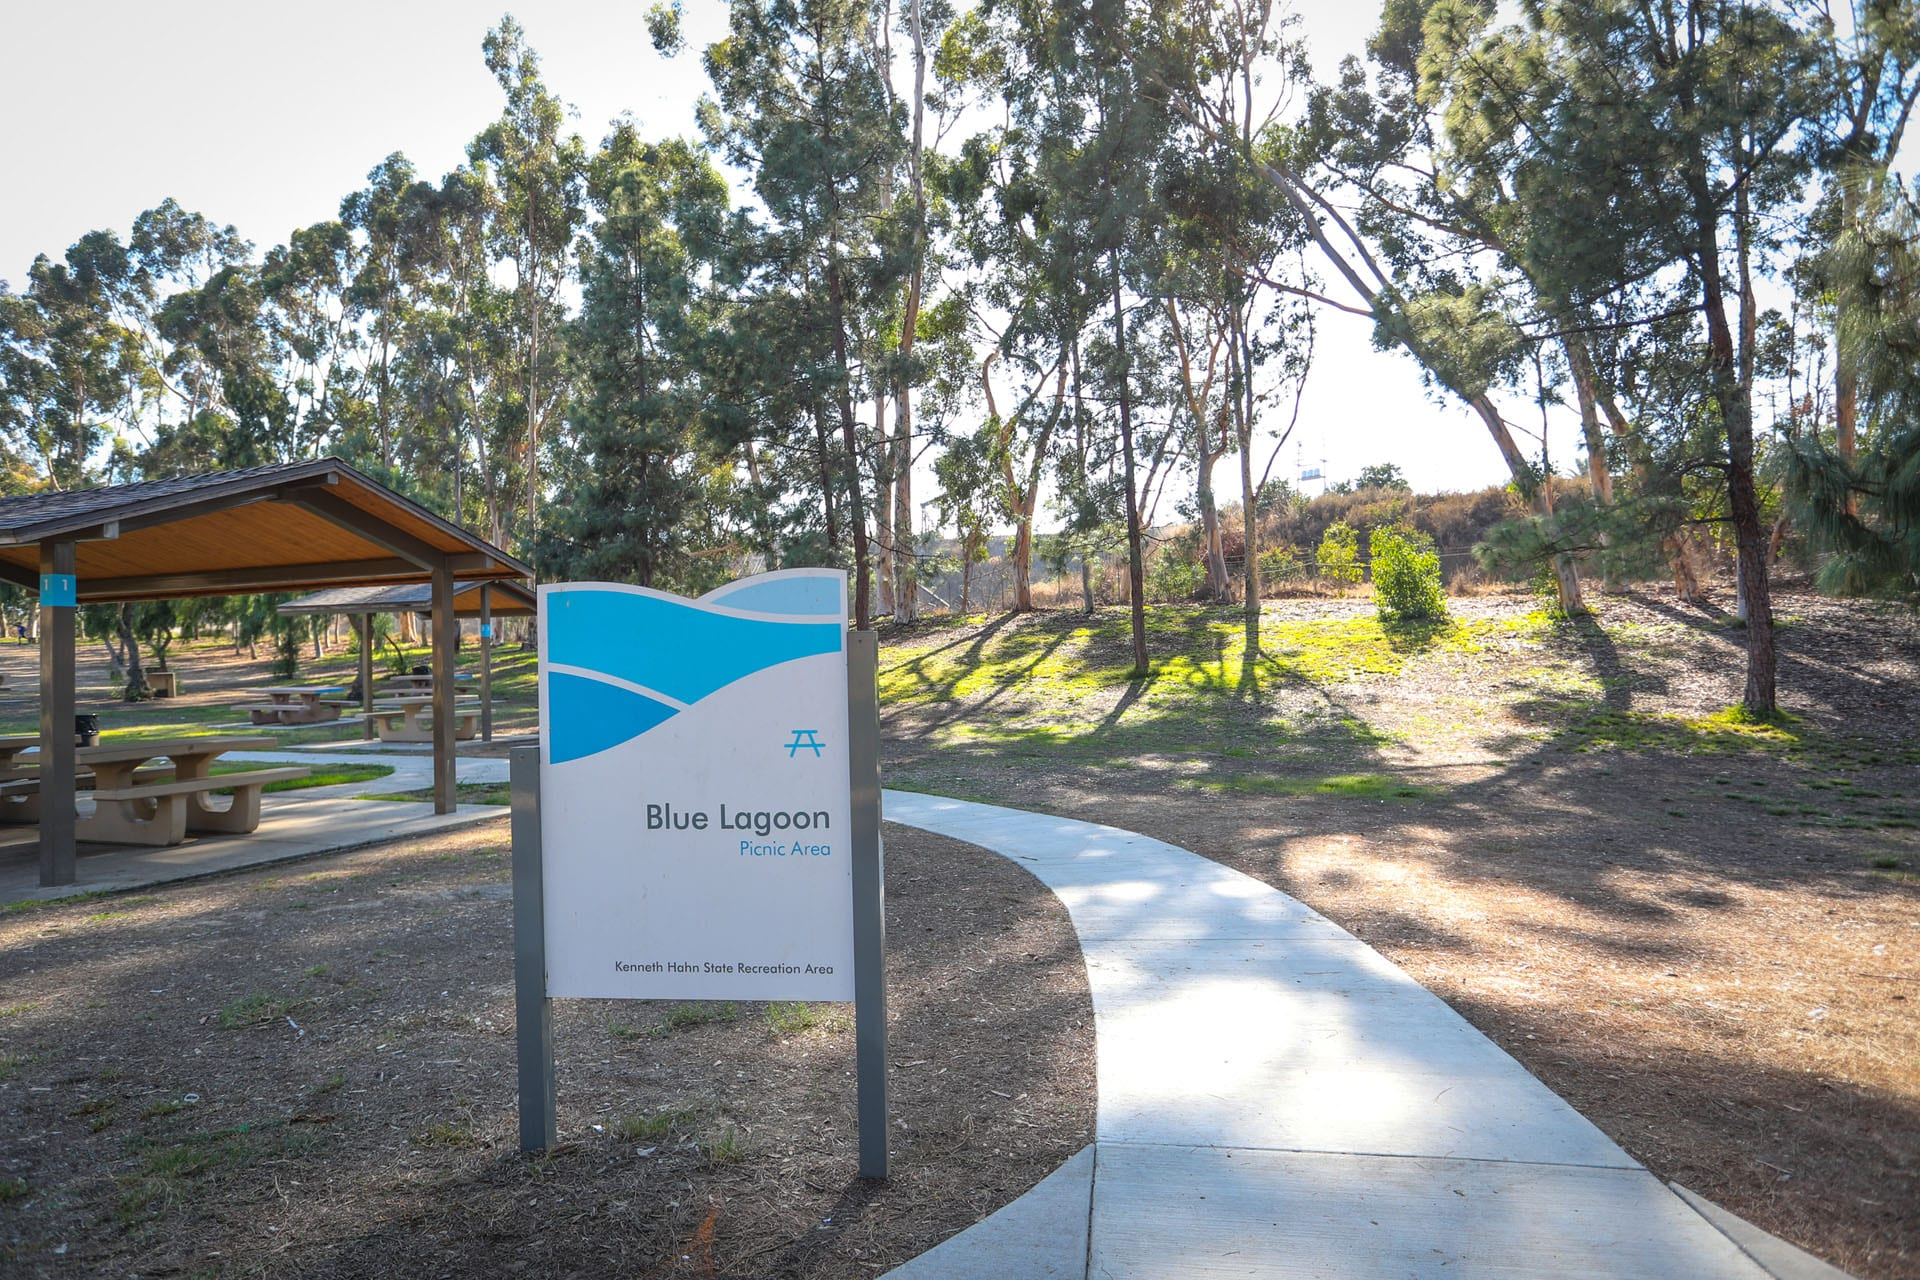 Blue Lagoon Picnic Area sign